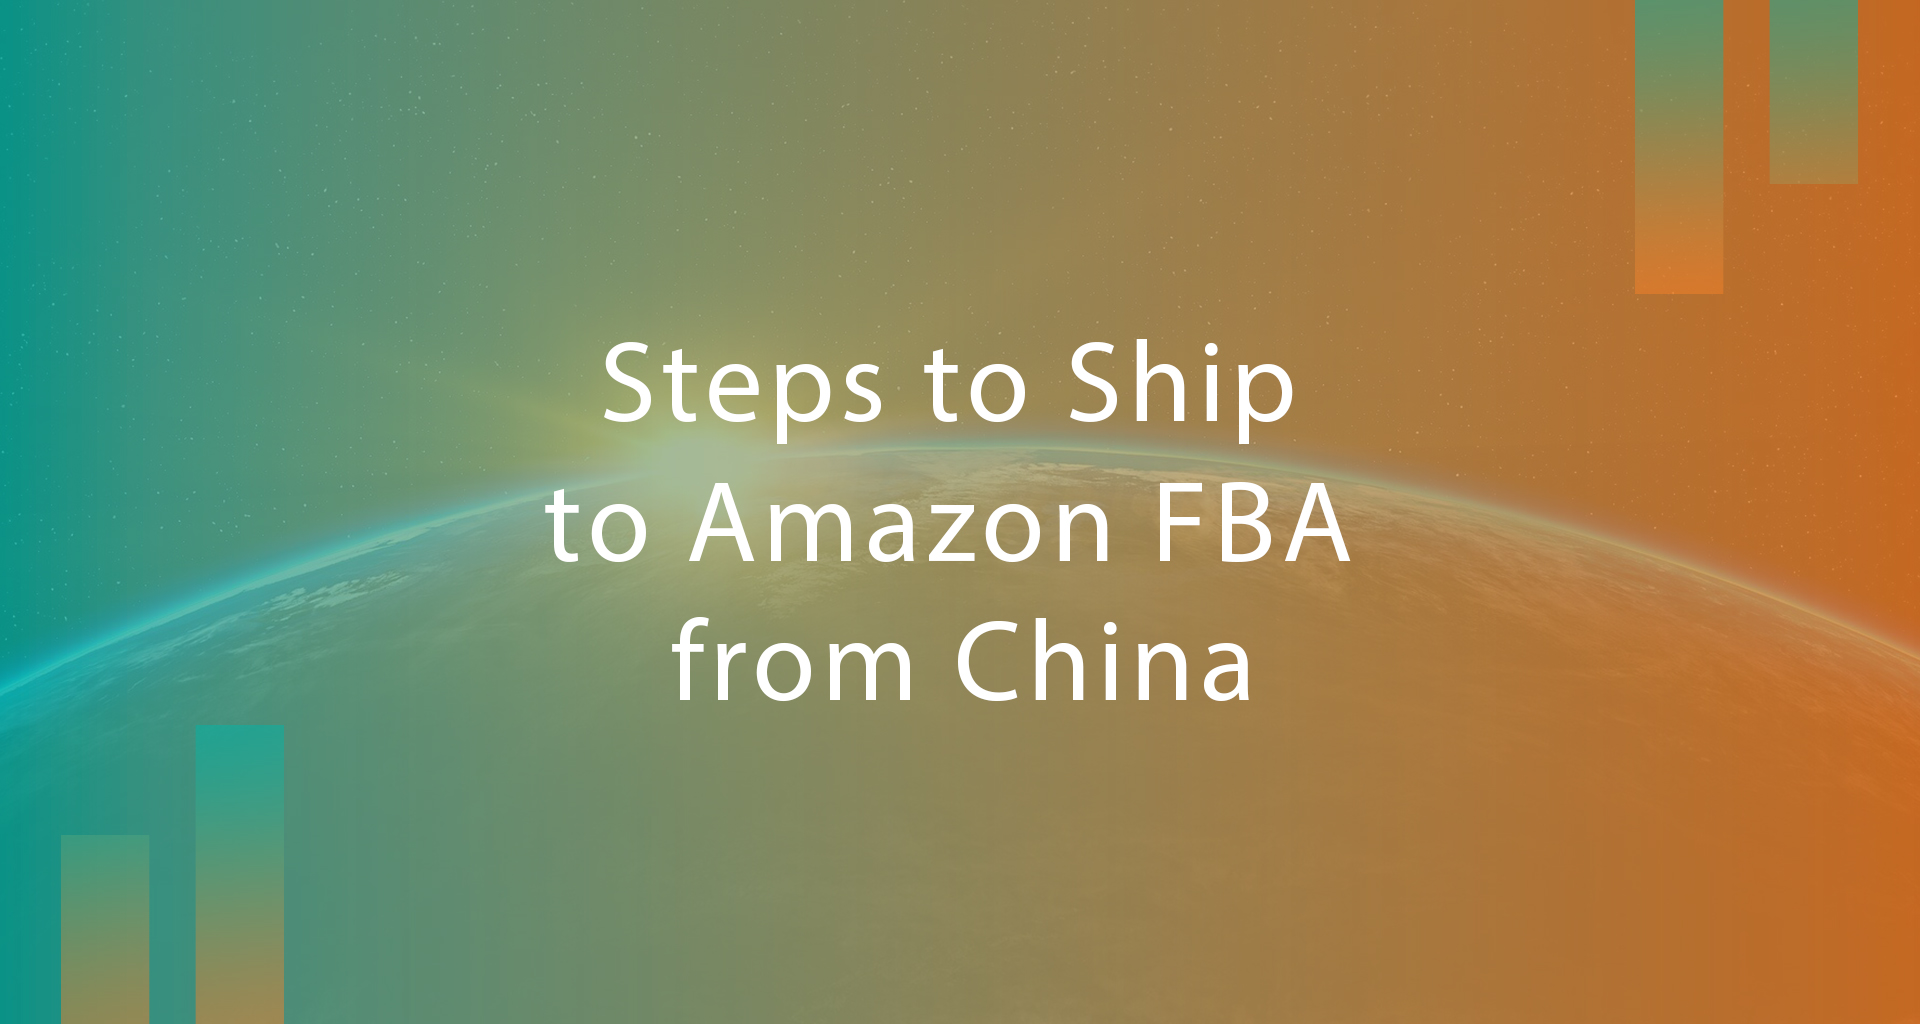 Steps to Ship to Amazon FBA from China